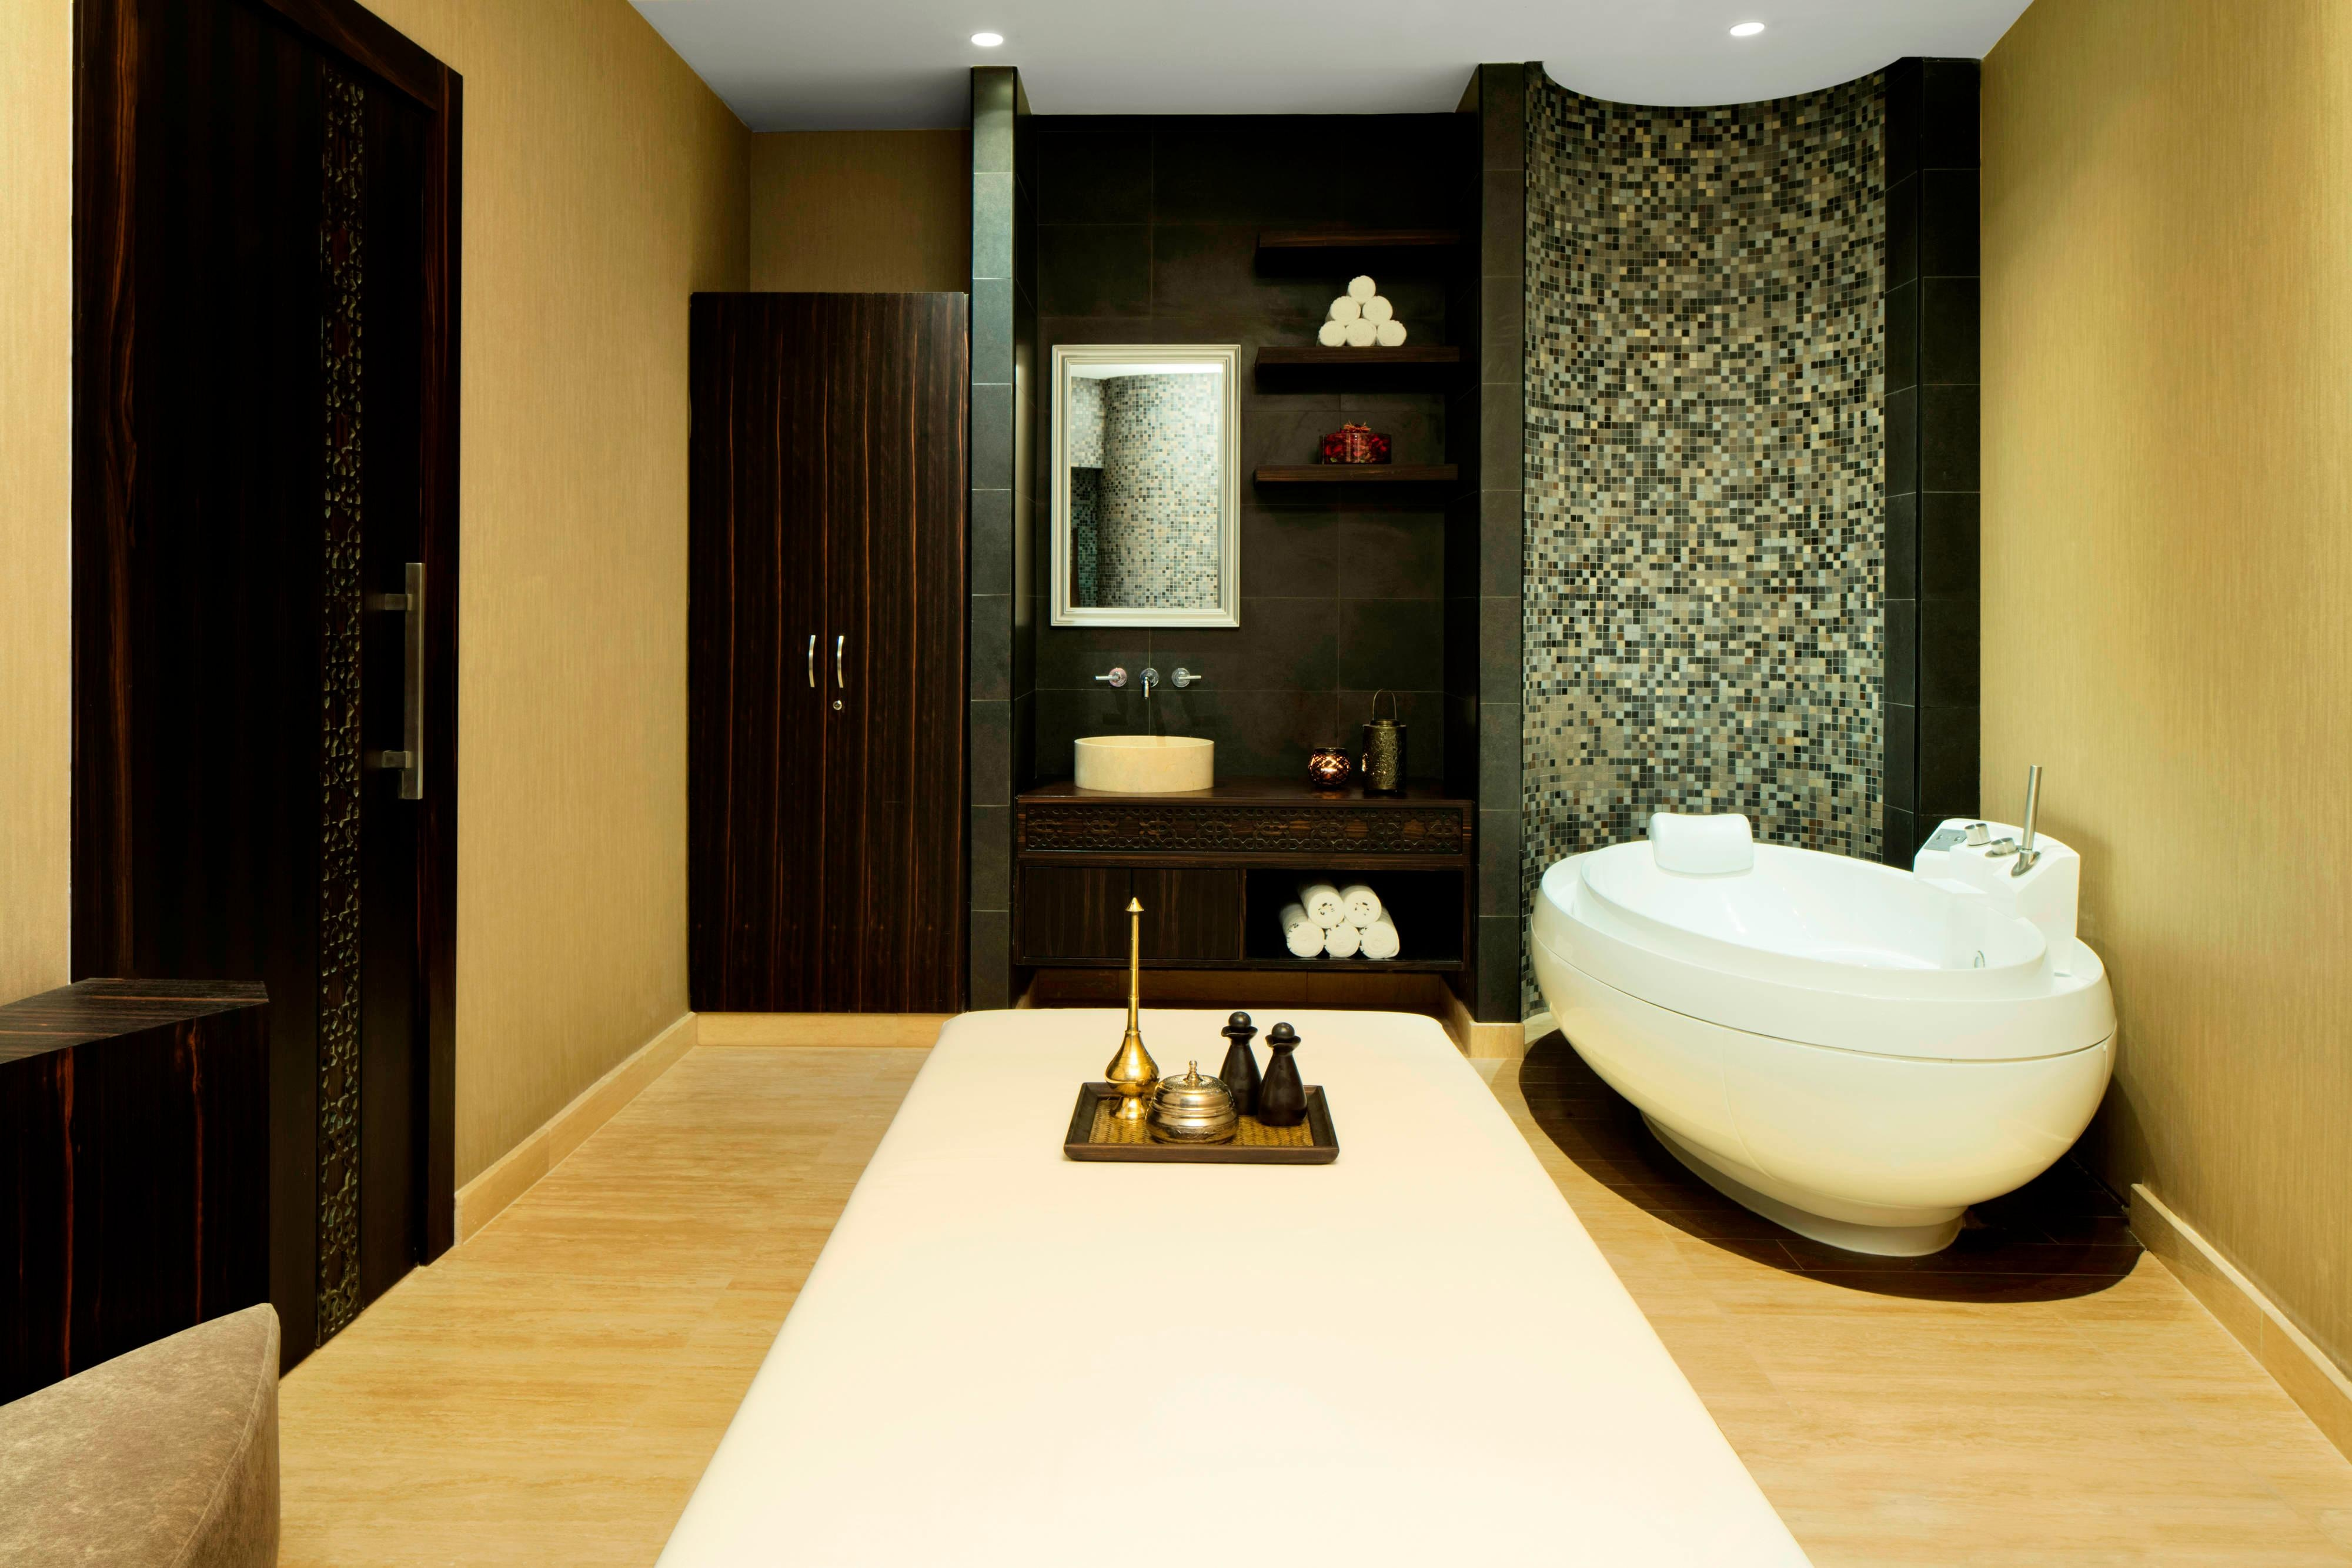 Shine Spa Treatment Room